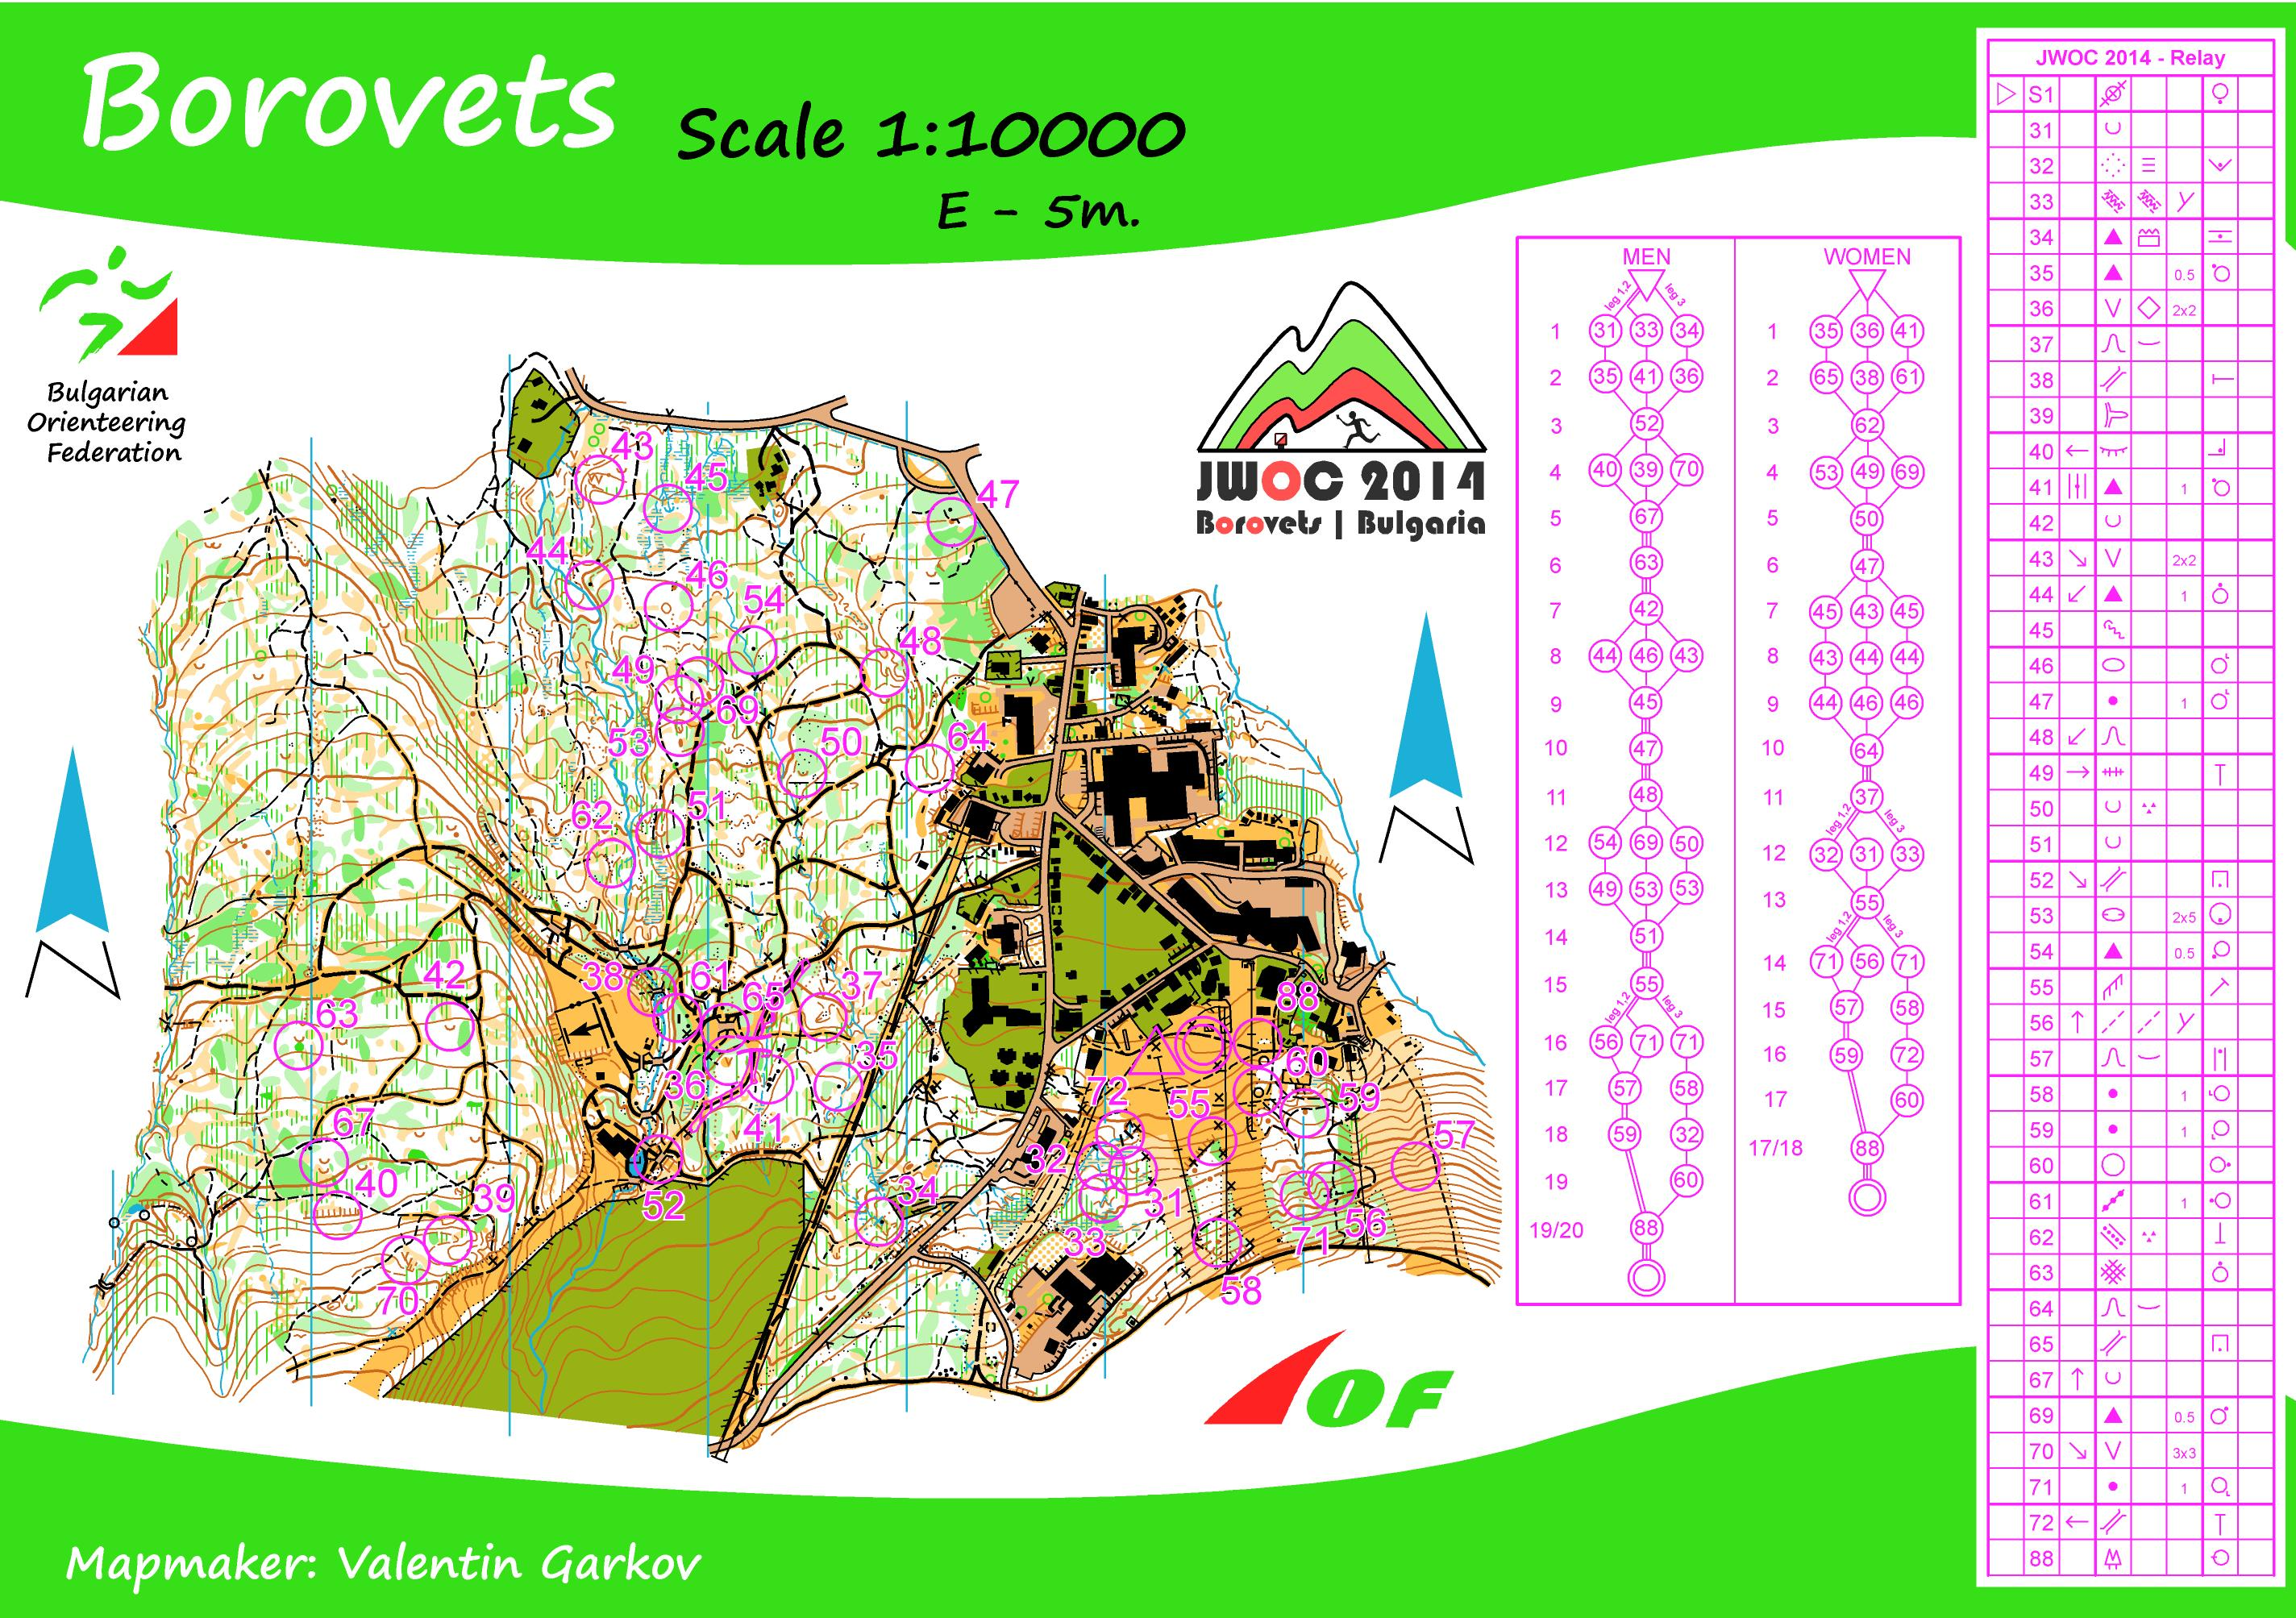 JWOC Maps Results And Medal Overview World Of O News - Sweden map distance